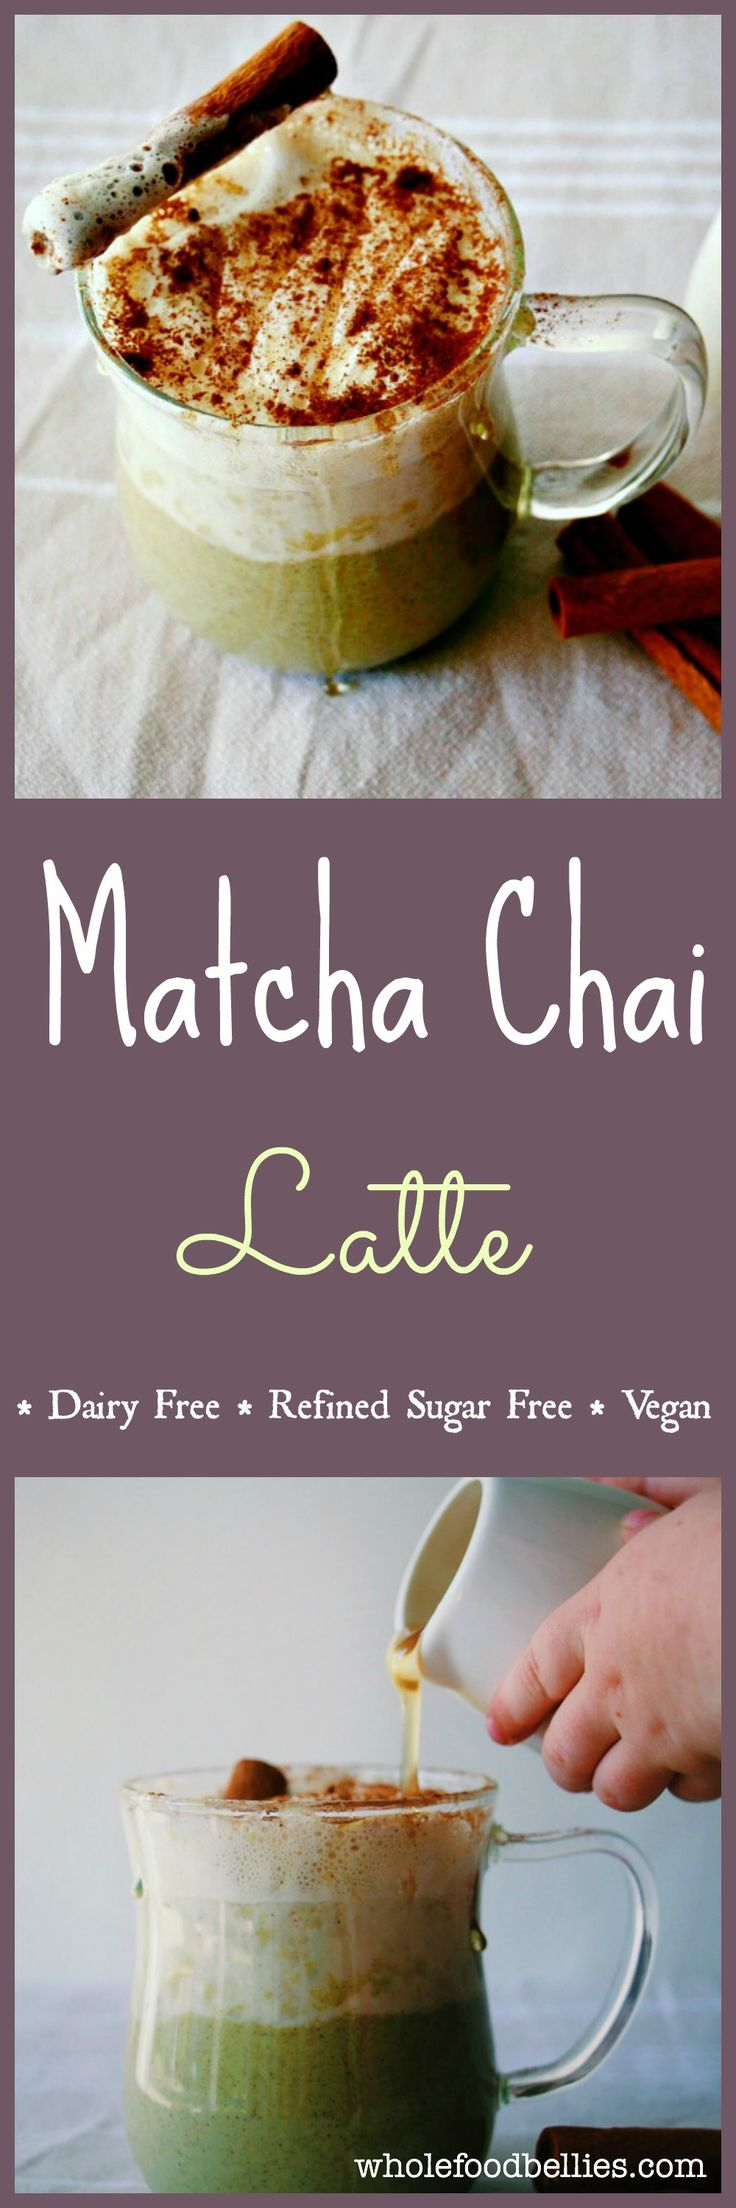 Green Tea Chai Spiced Latte. No refined sugar, dairy free, vegan, clean eating #matcha #vegan #drink #chai